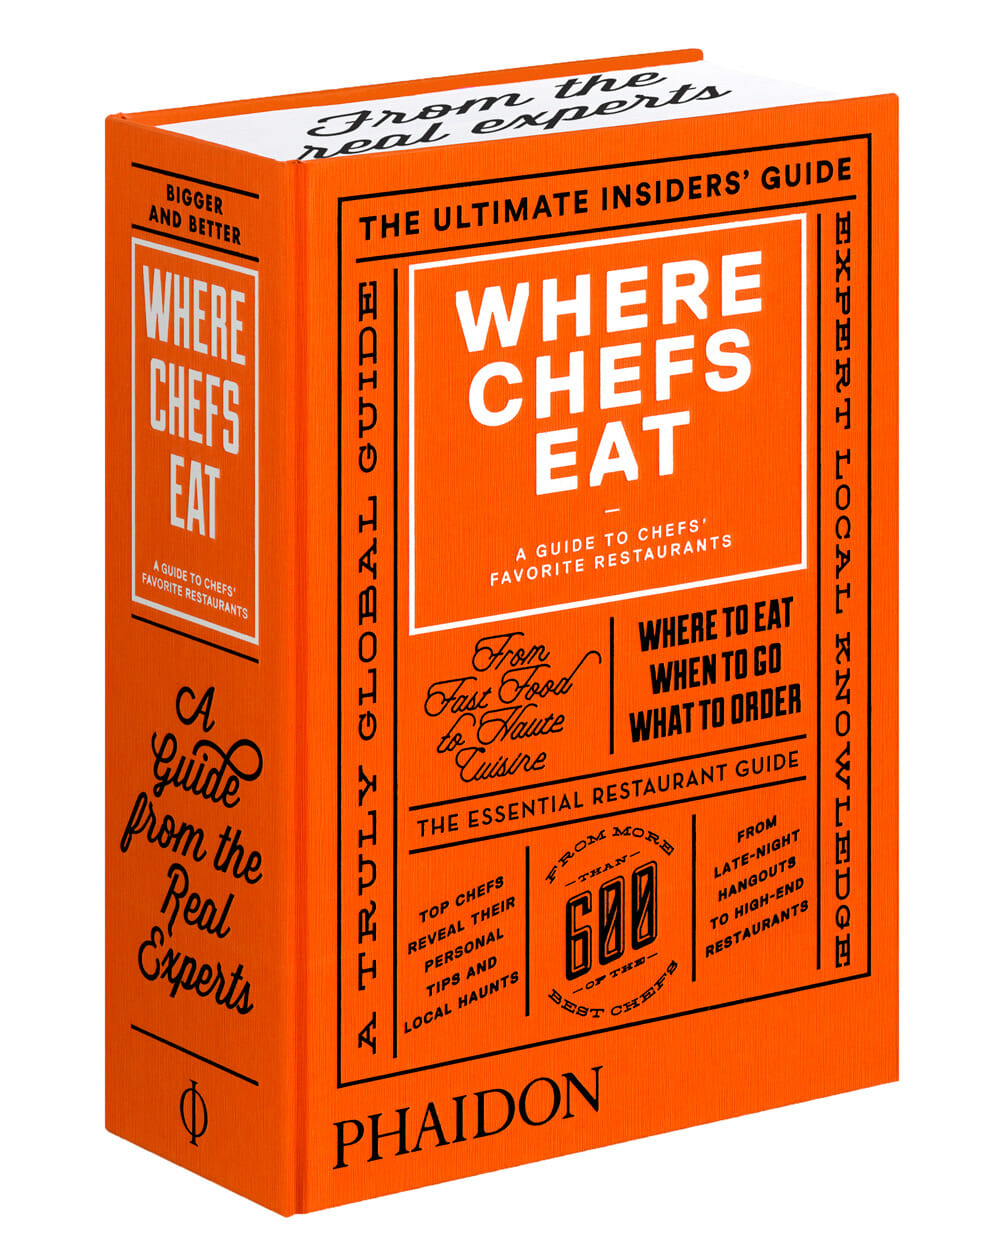 WHERE-CHEFS-EAT